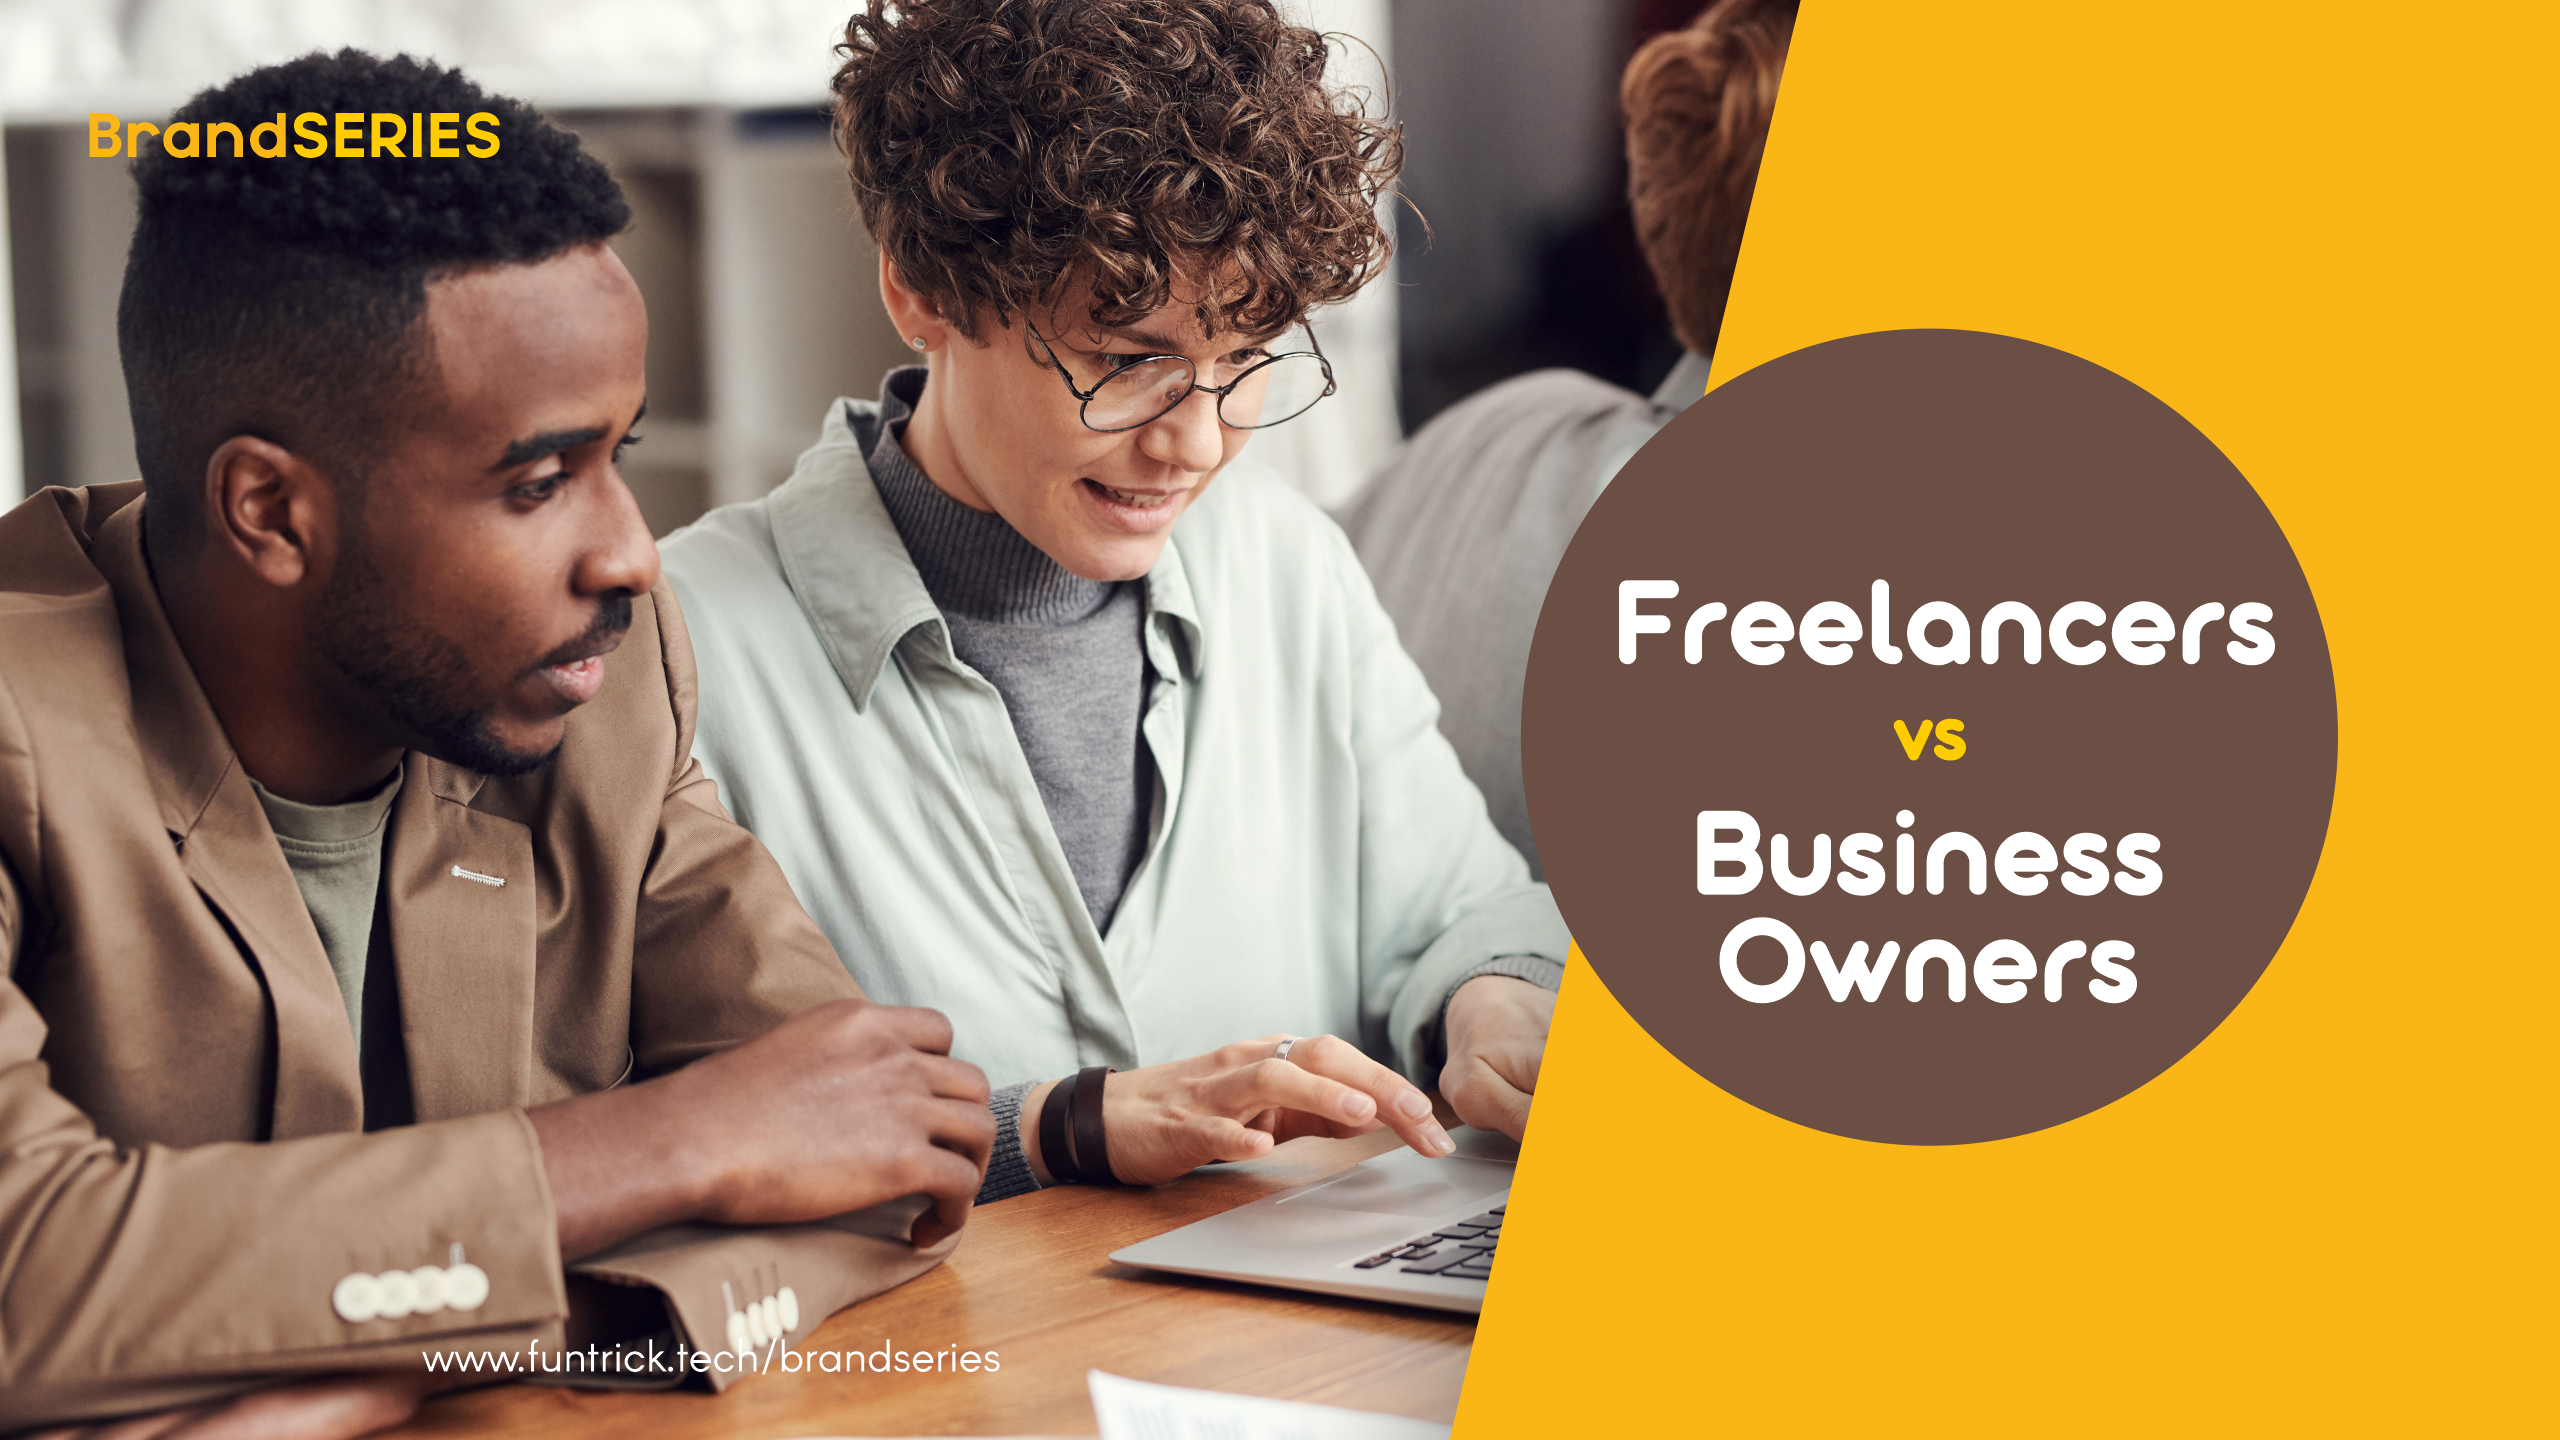 Freelancers vs Business Owners